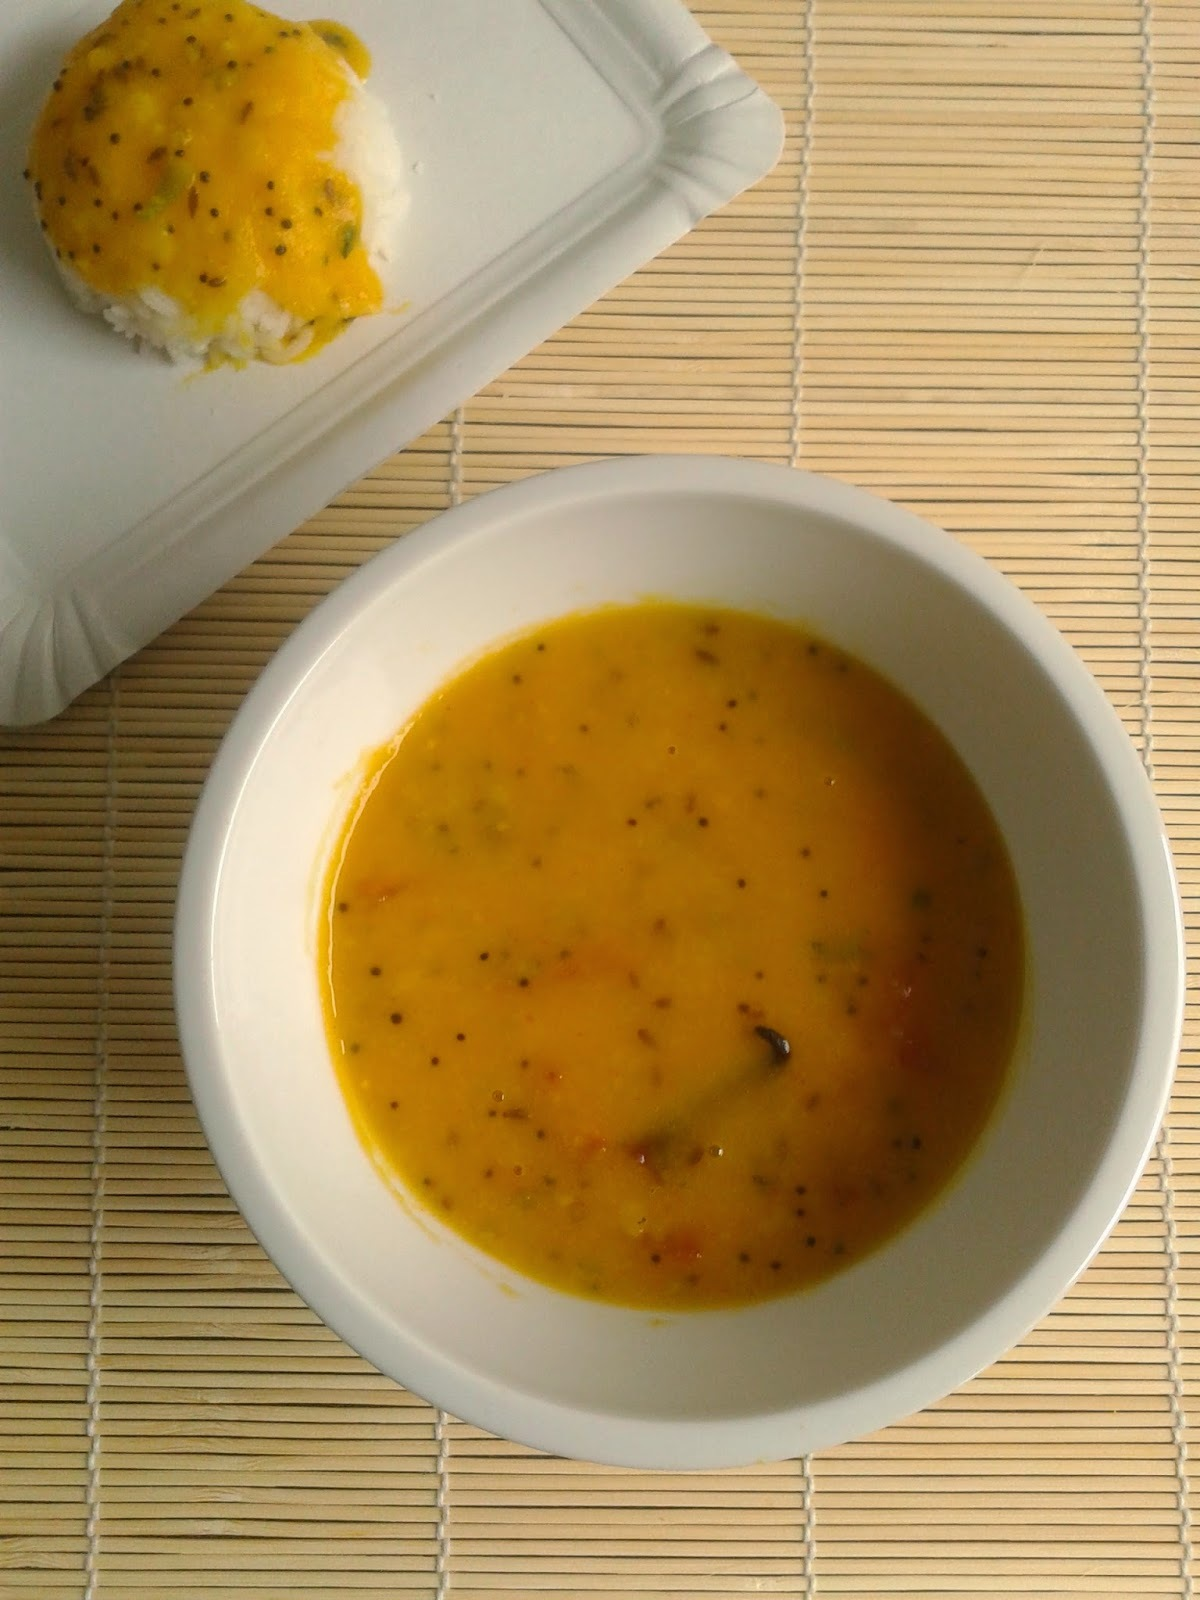 Recipe of Gujarati Toor Dal | How to Make Gujarati Toor Dal